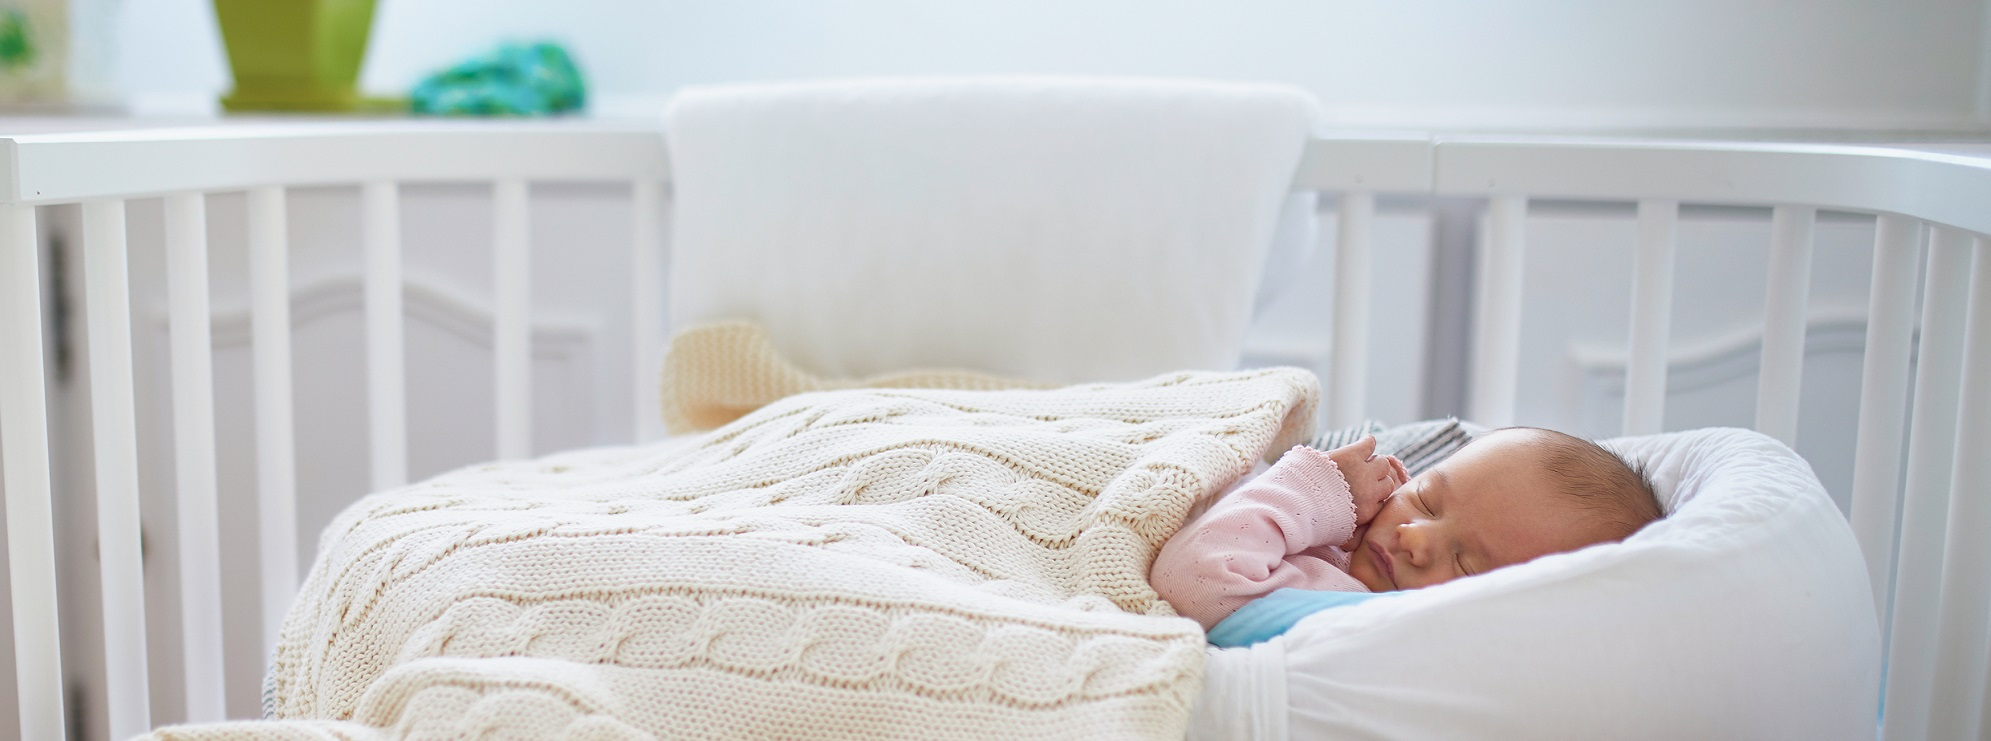 What Can Baby Sleep In Next To Bed How To Get Your Baby To Sleep In A Crib Faster 5 Surefire Tips